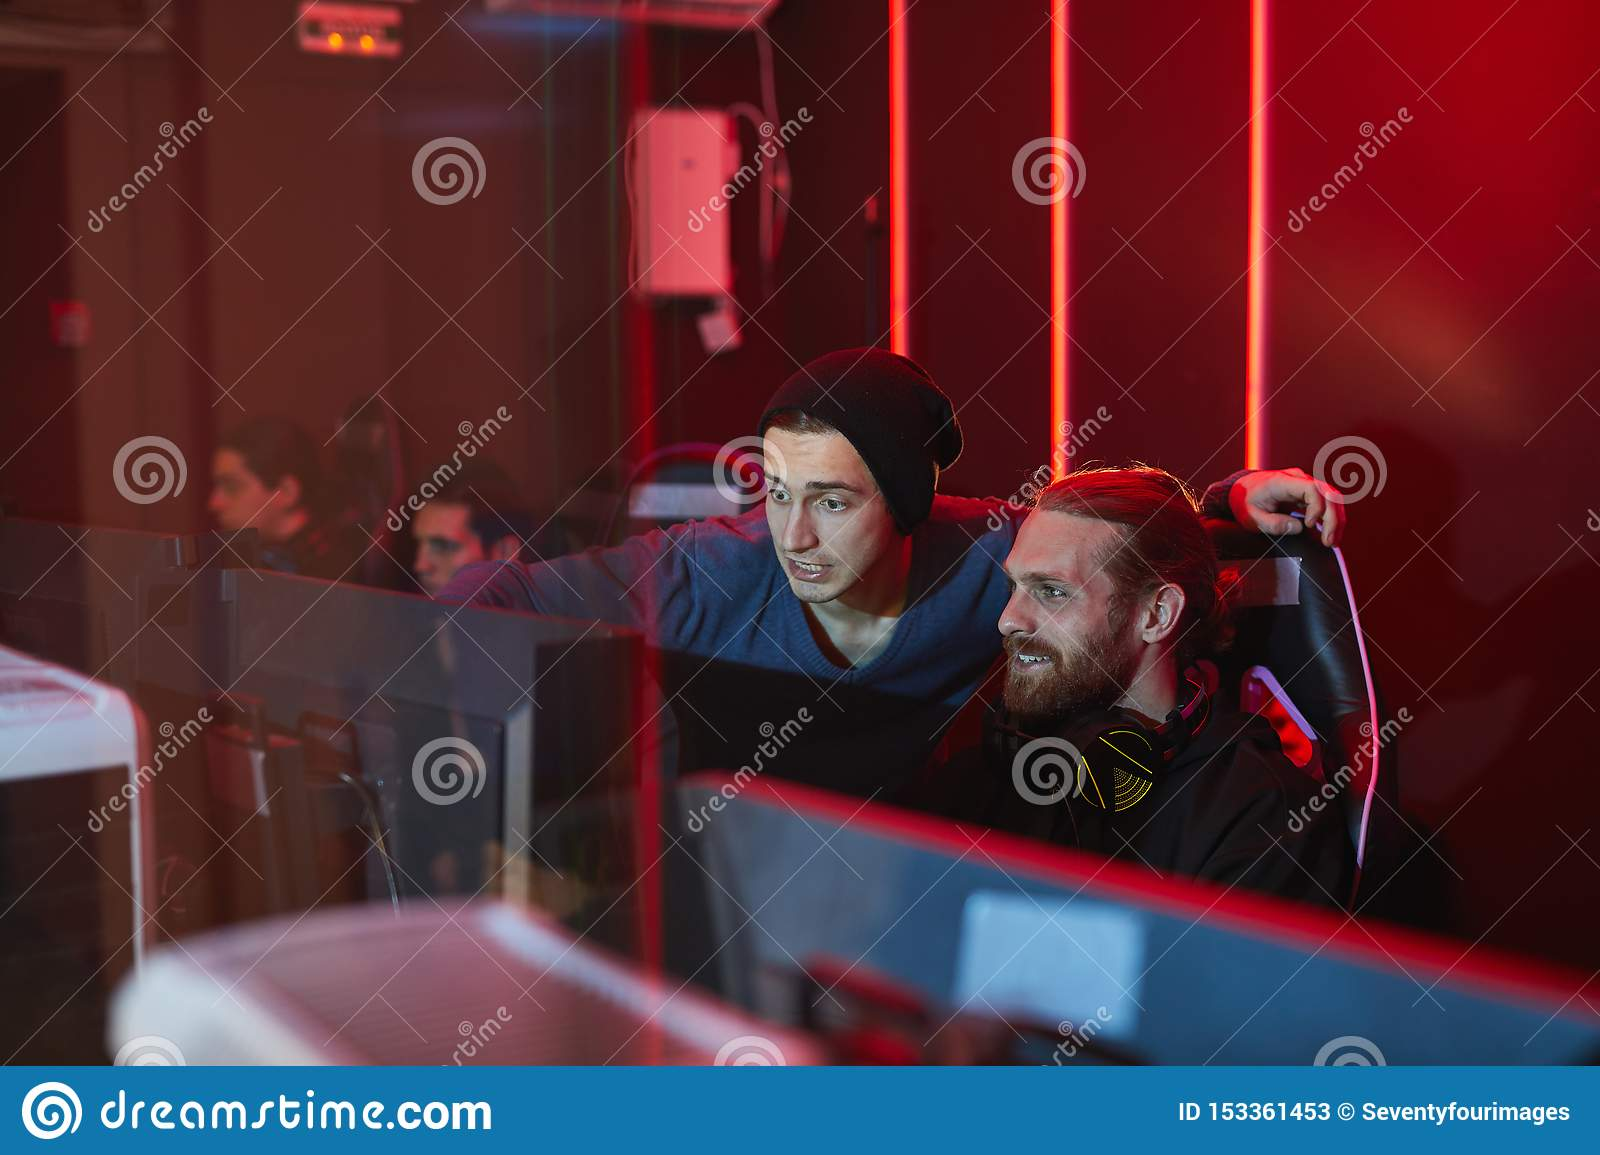 Video Game Stock Photos, Pictures & Royalty-Free Images